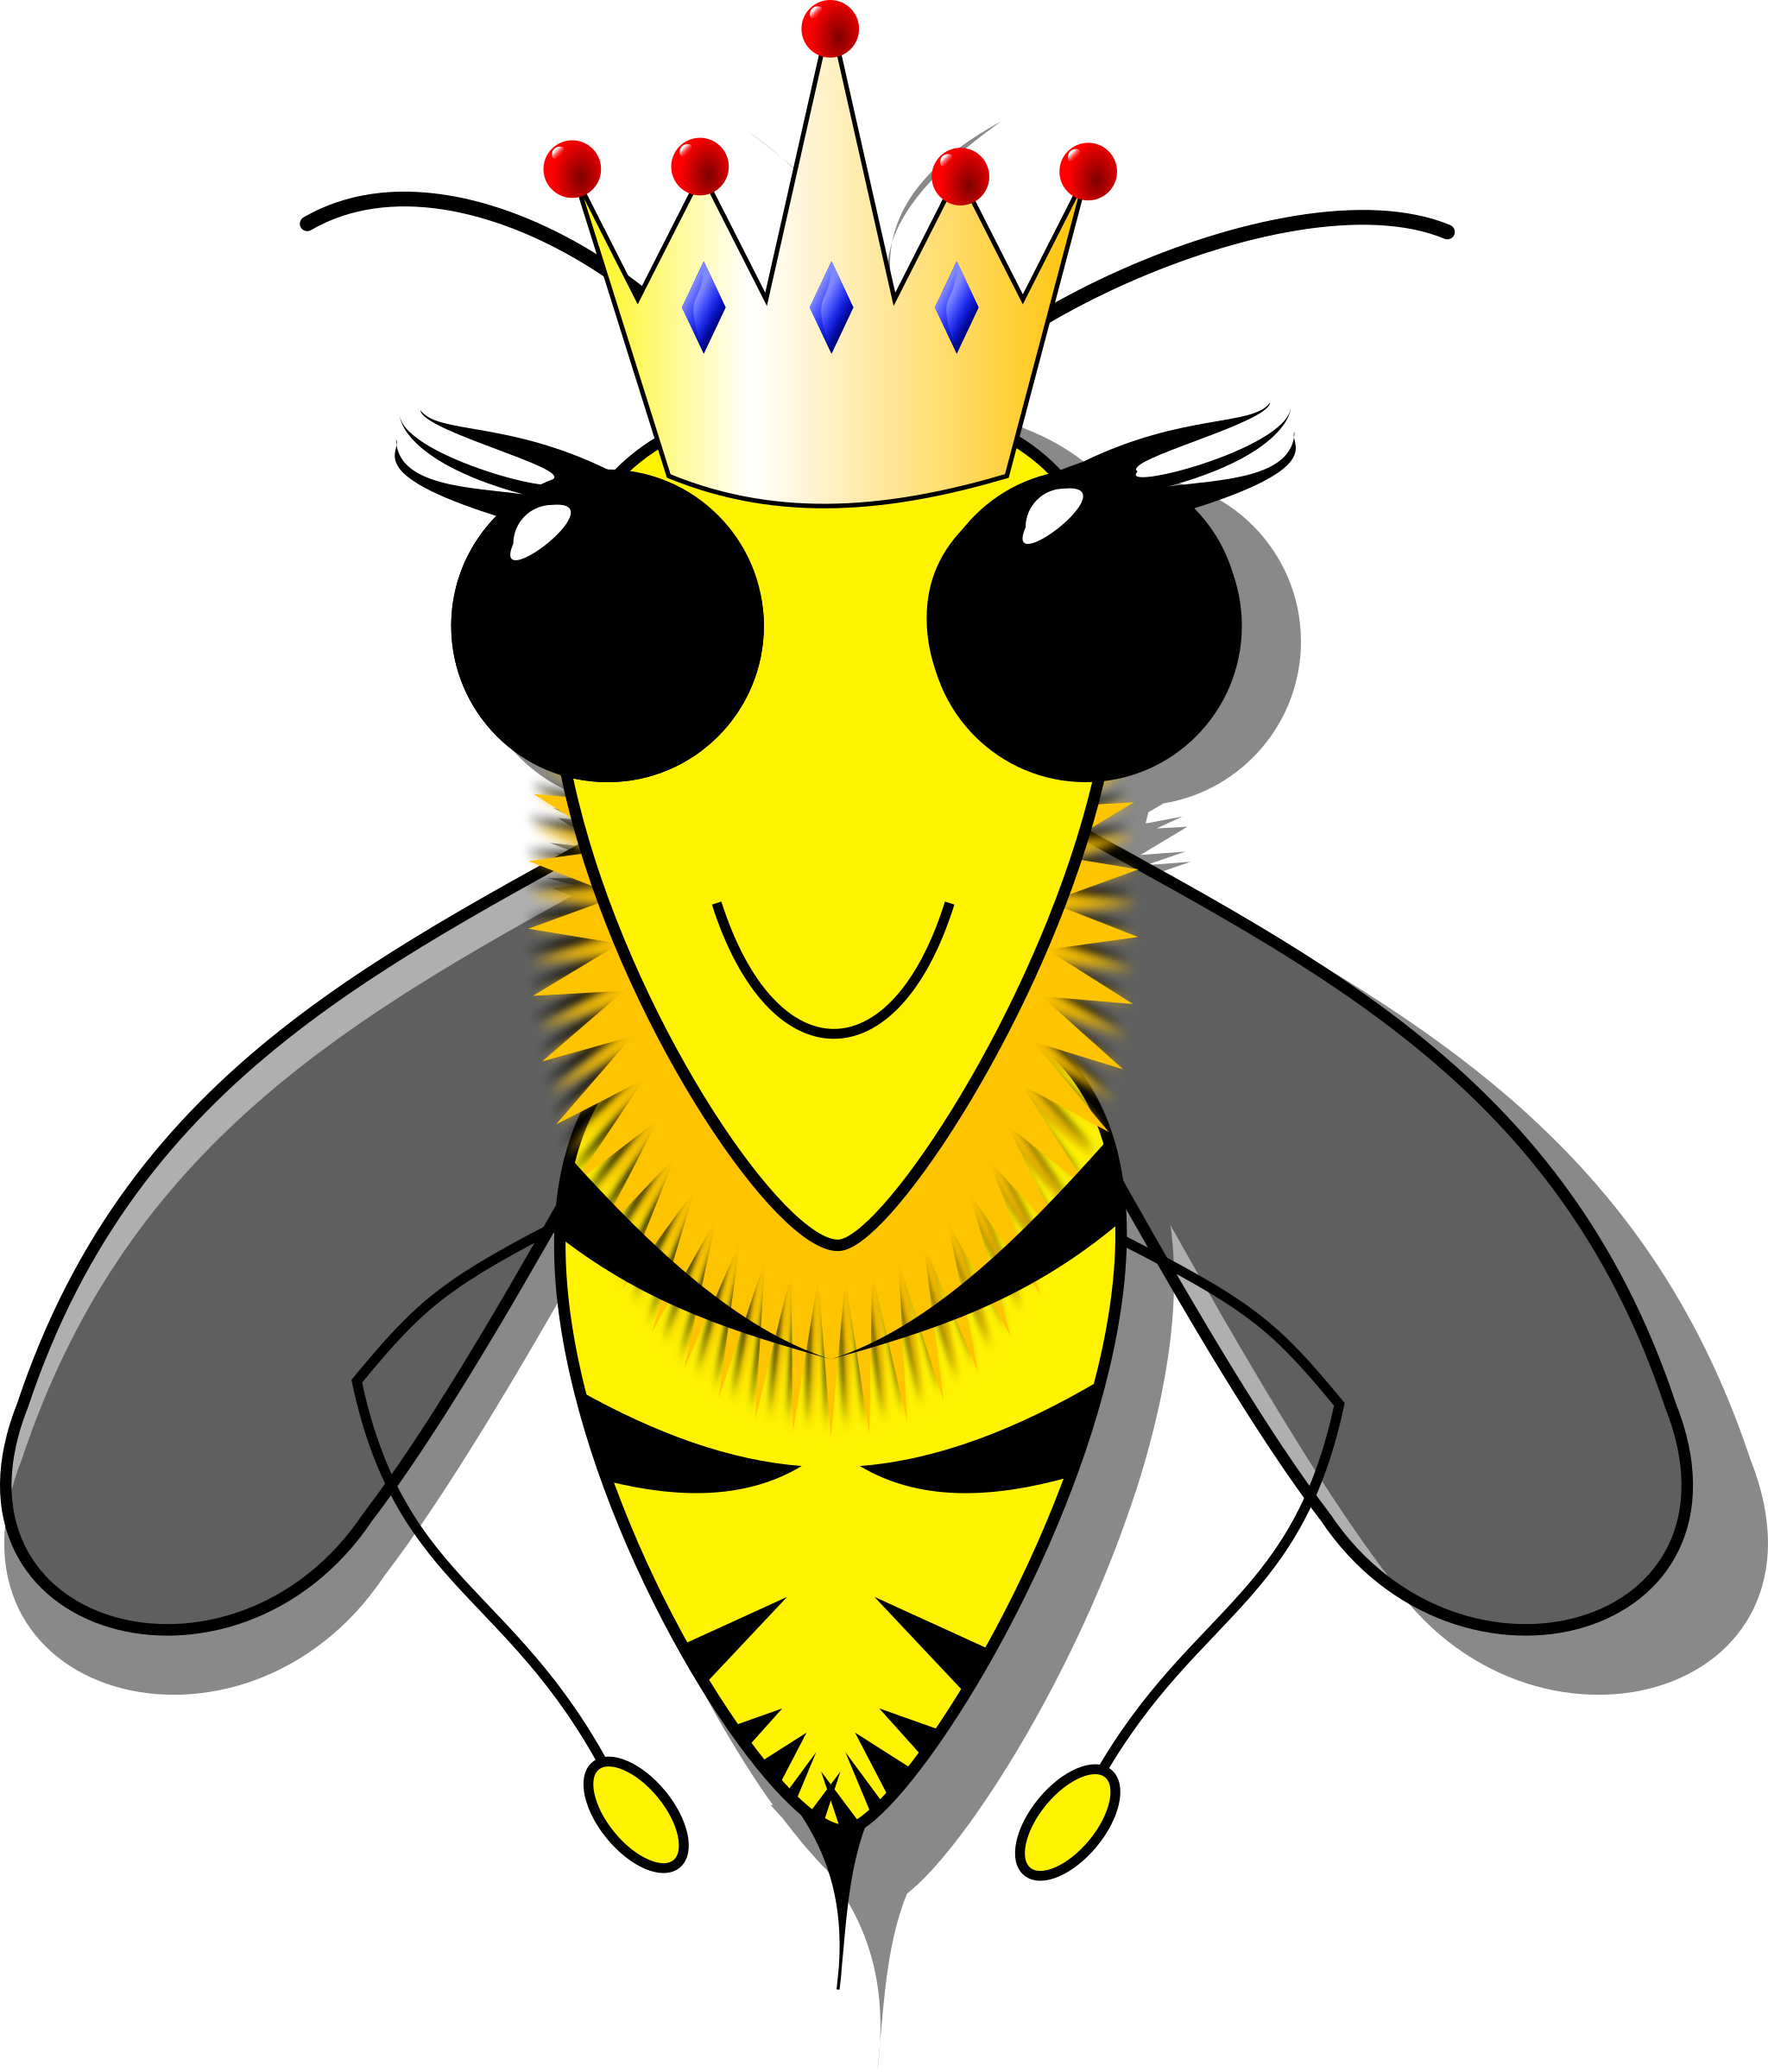 Bee big image png. Queen clipart honeybee